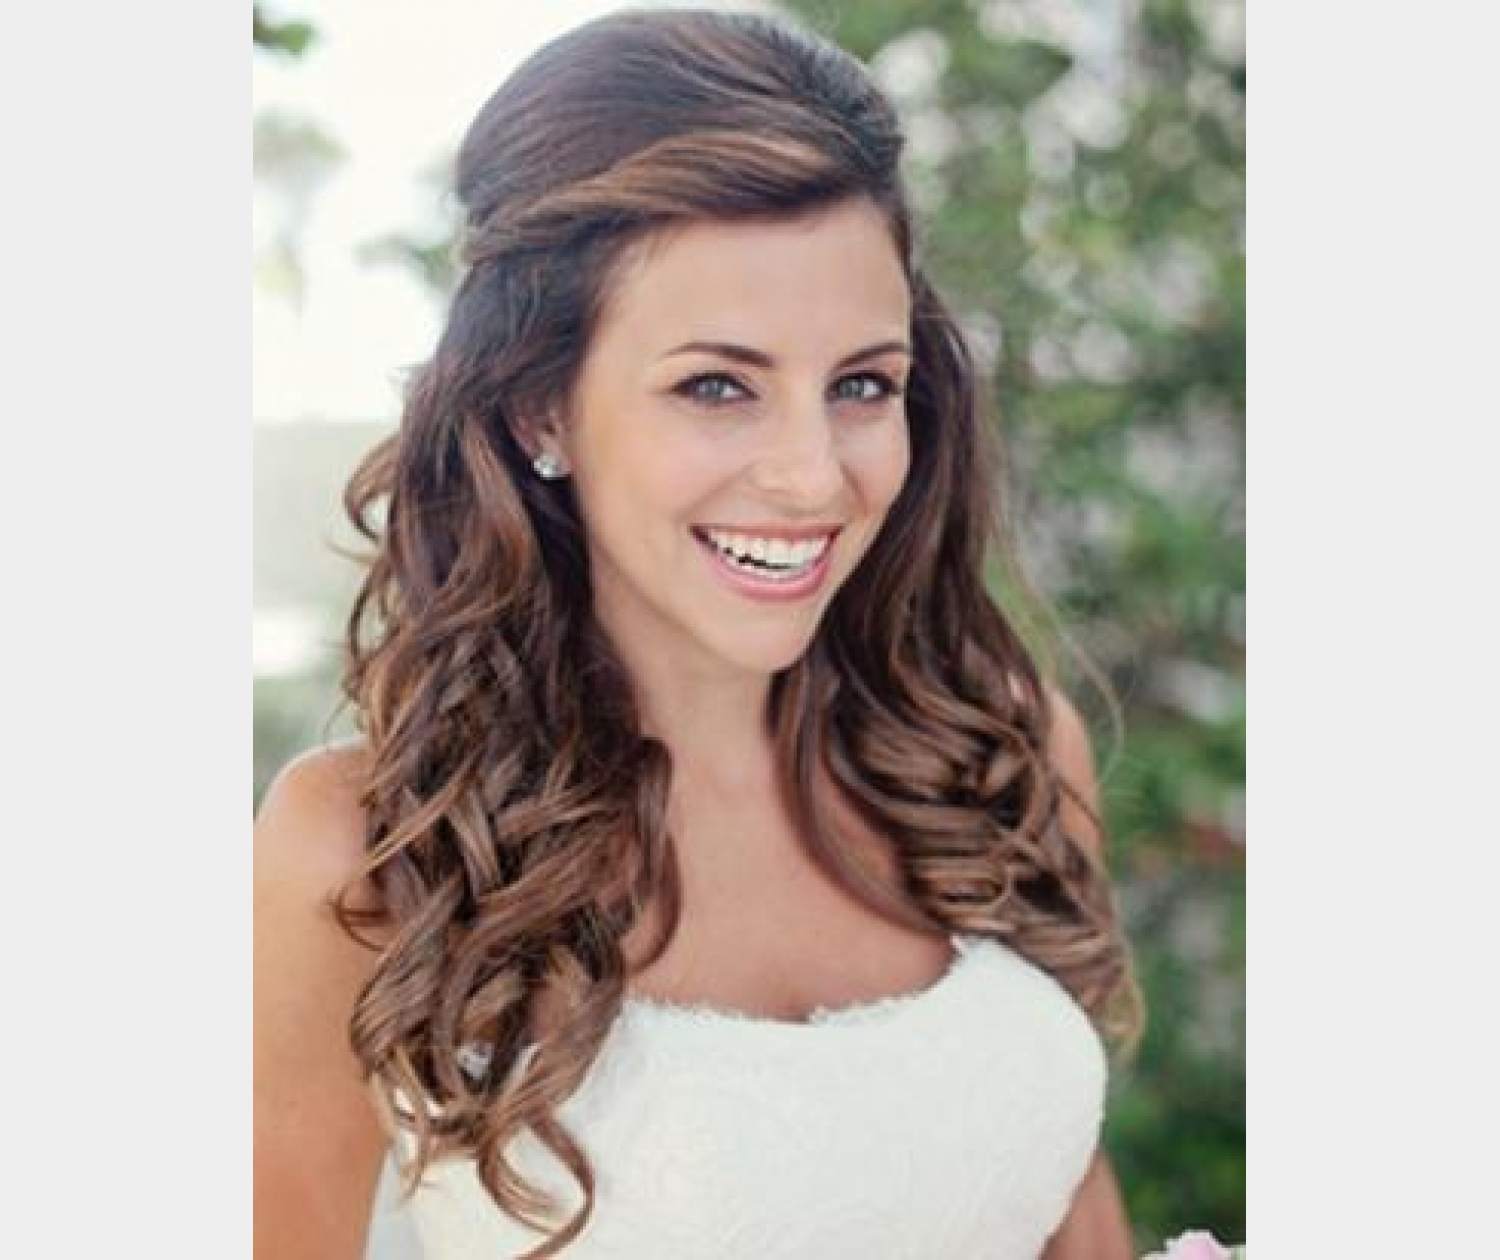 Specialist Wedding Hairdresser. See our packages